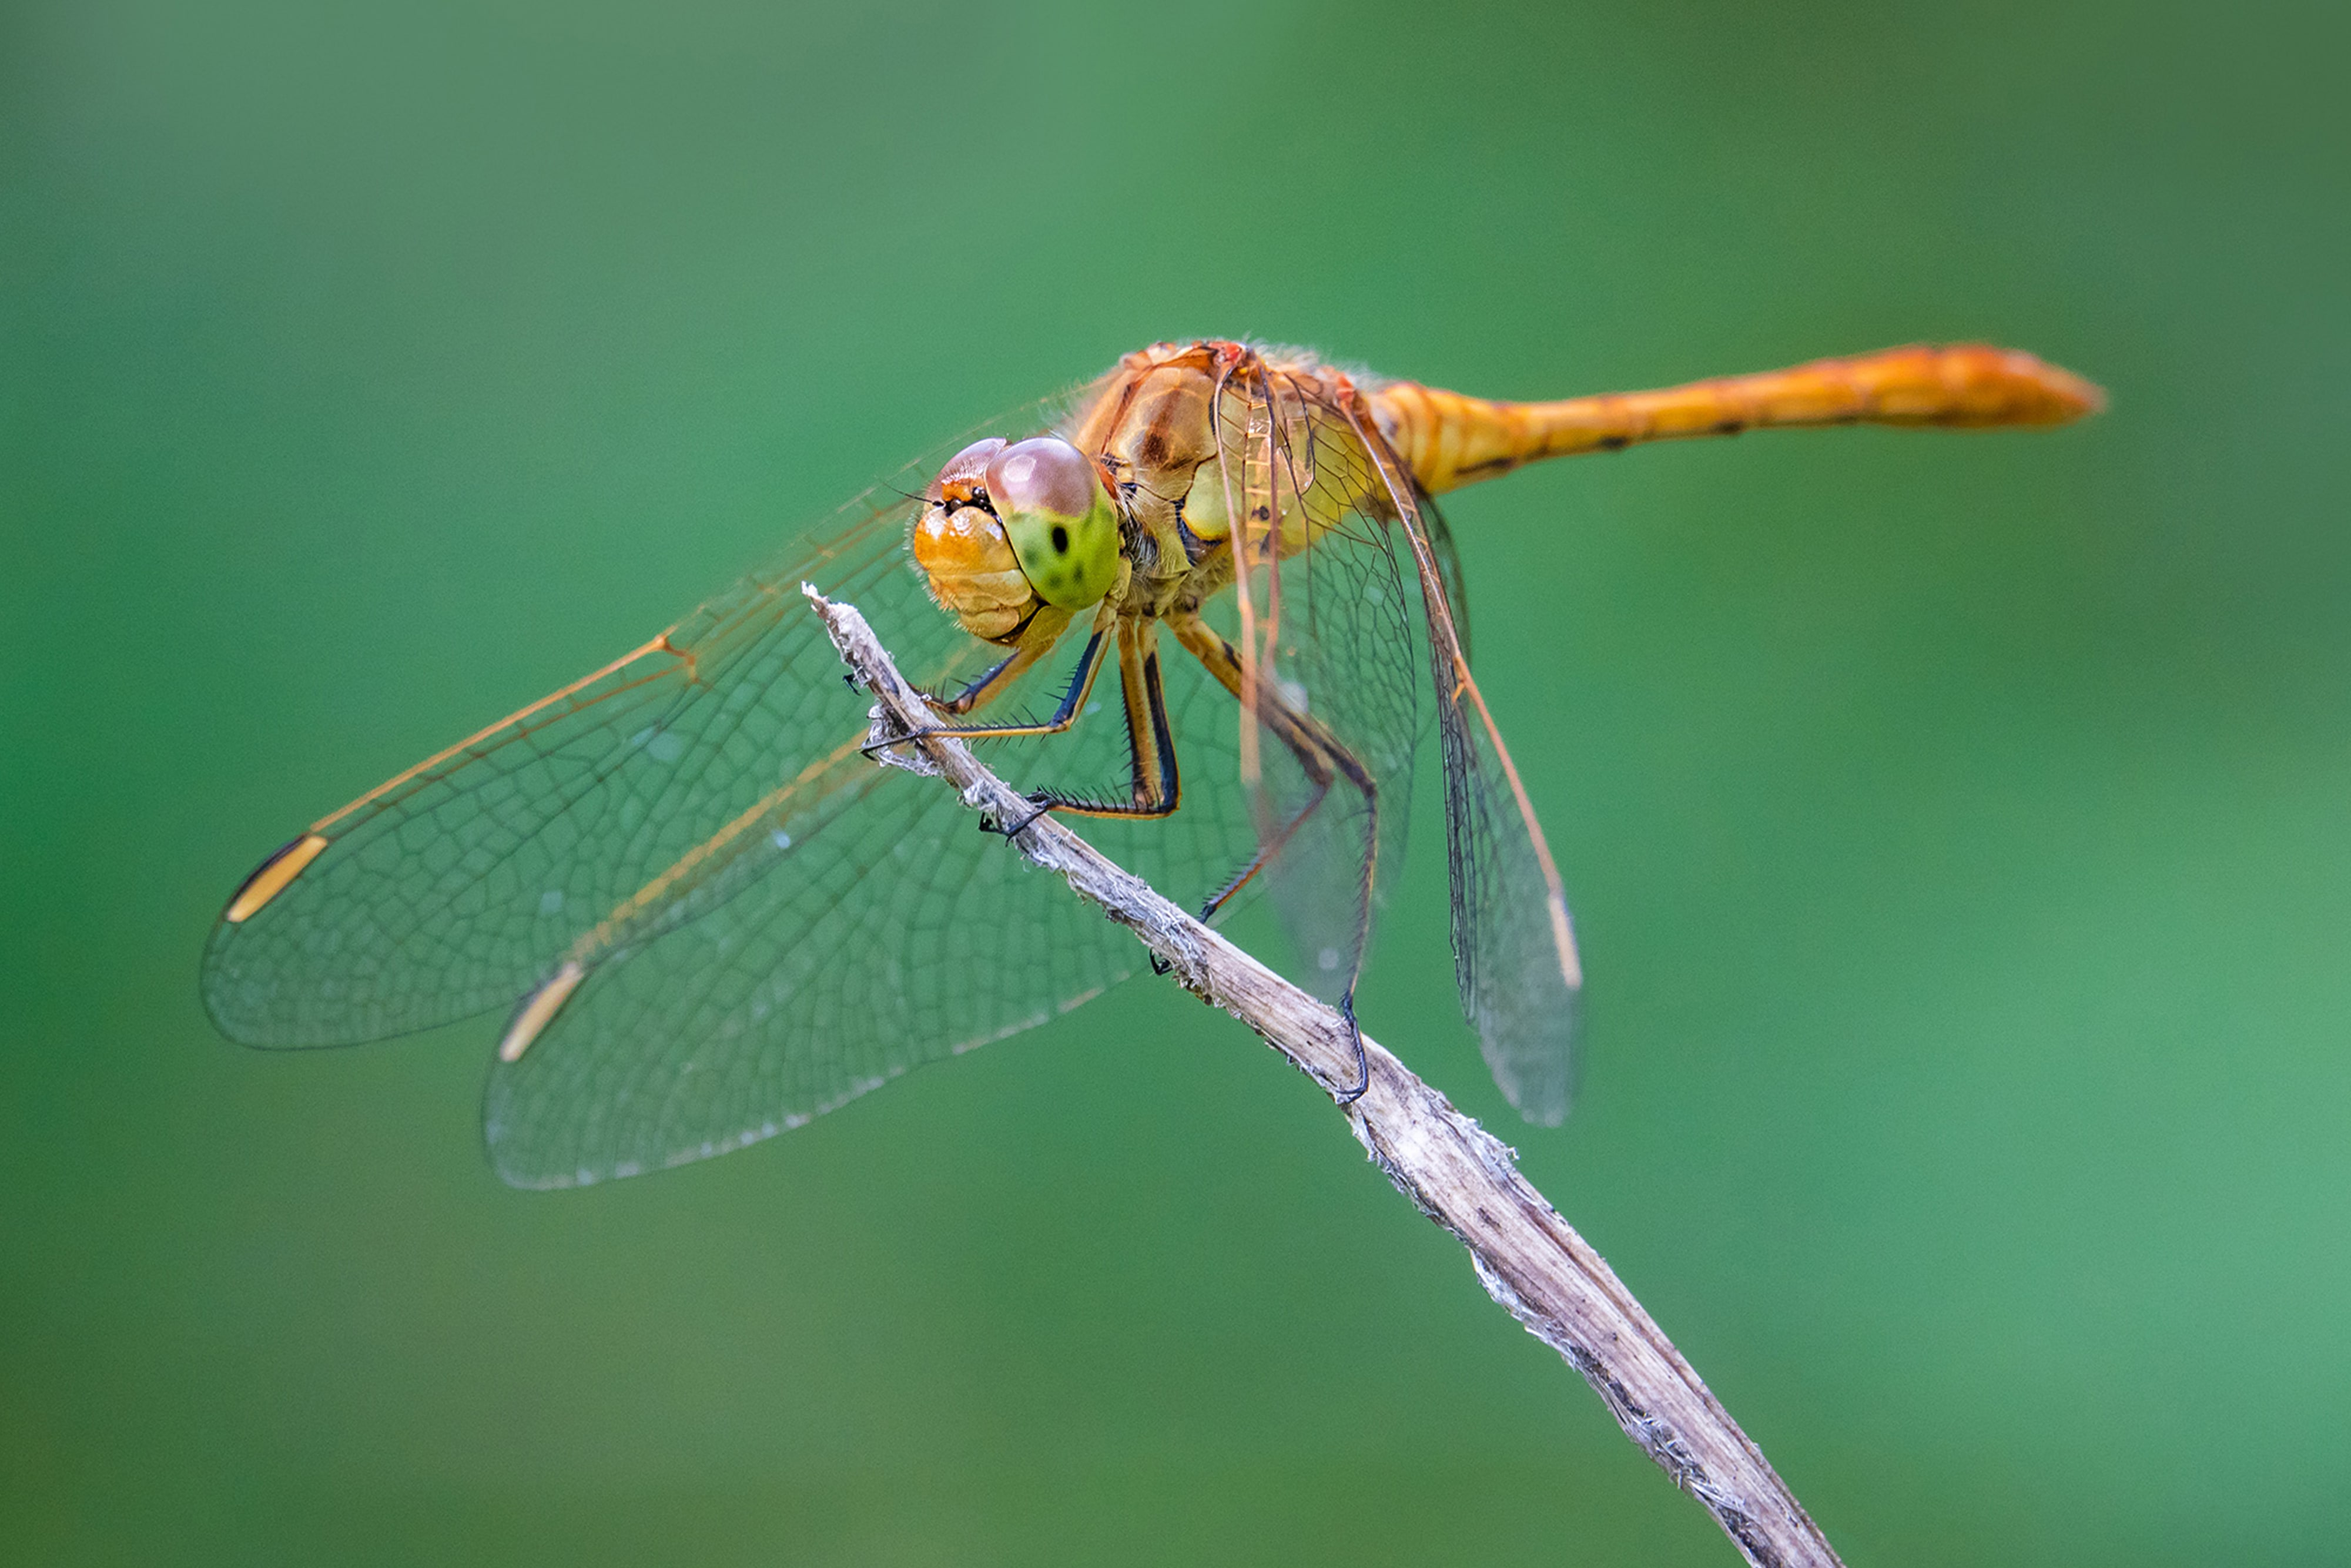 petar-sabol-sony-rx10IV-close-up-of-dragonfly-perched-on-the-end-of-a-twig